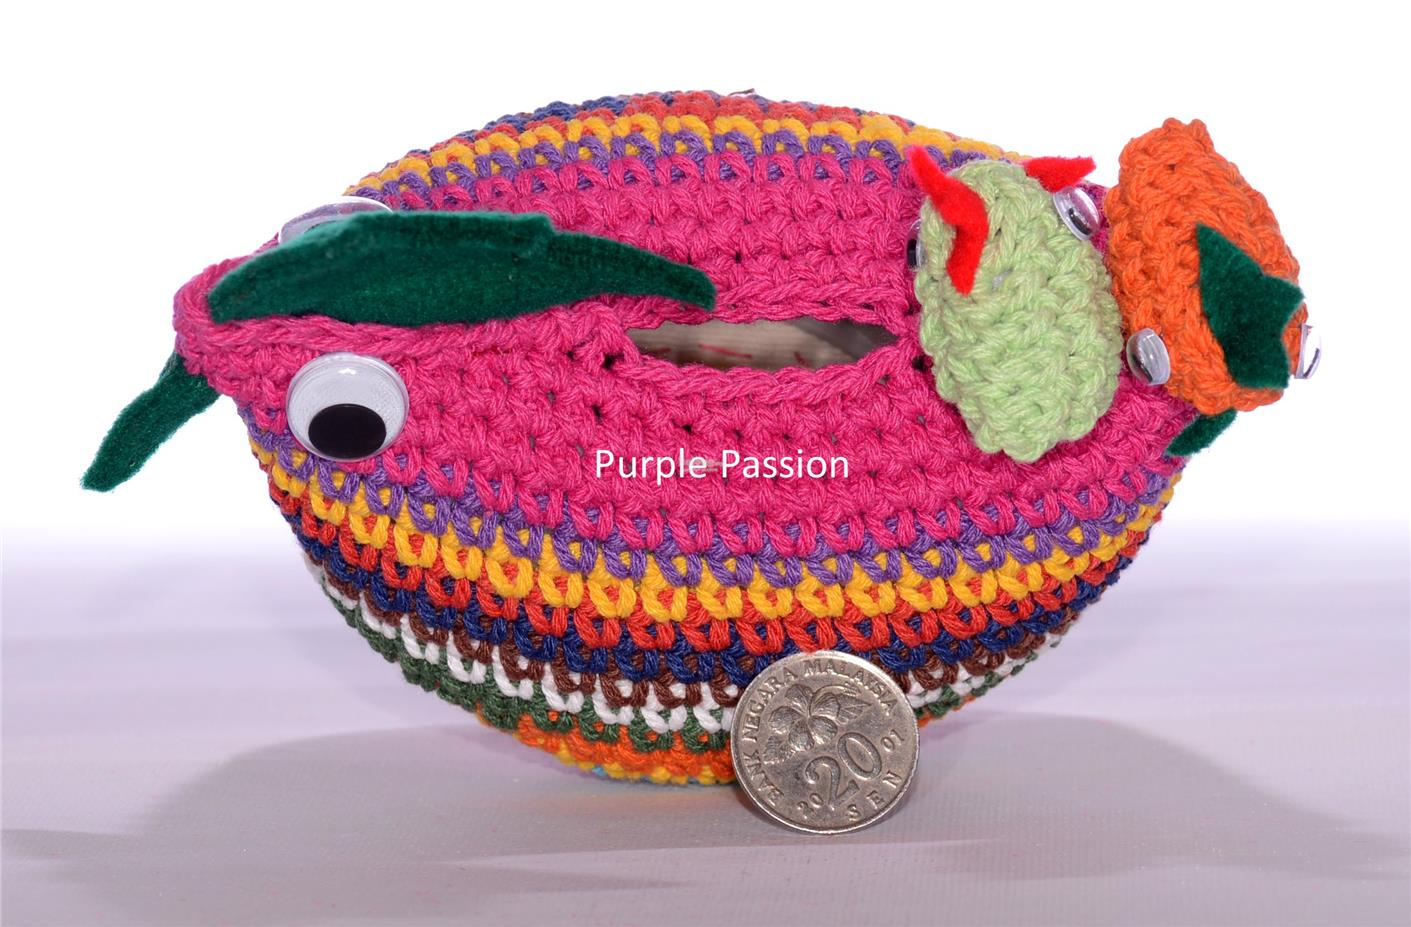 Handmade Crochet Coin Box for Gift and Home Decor, PPCB048